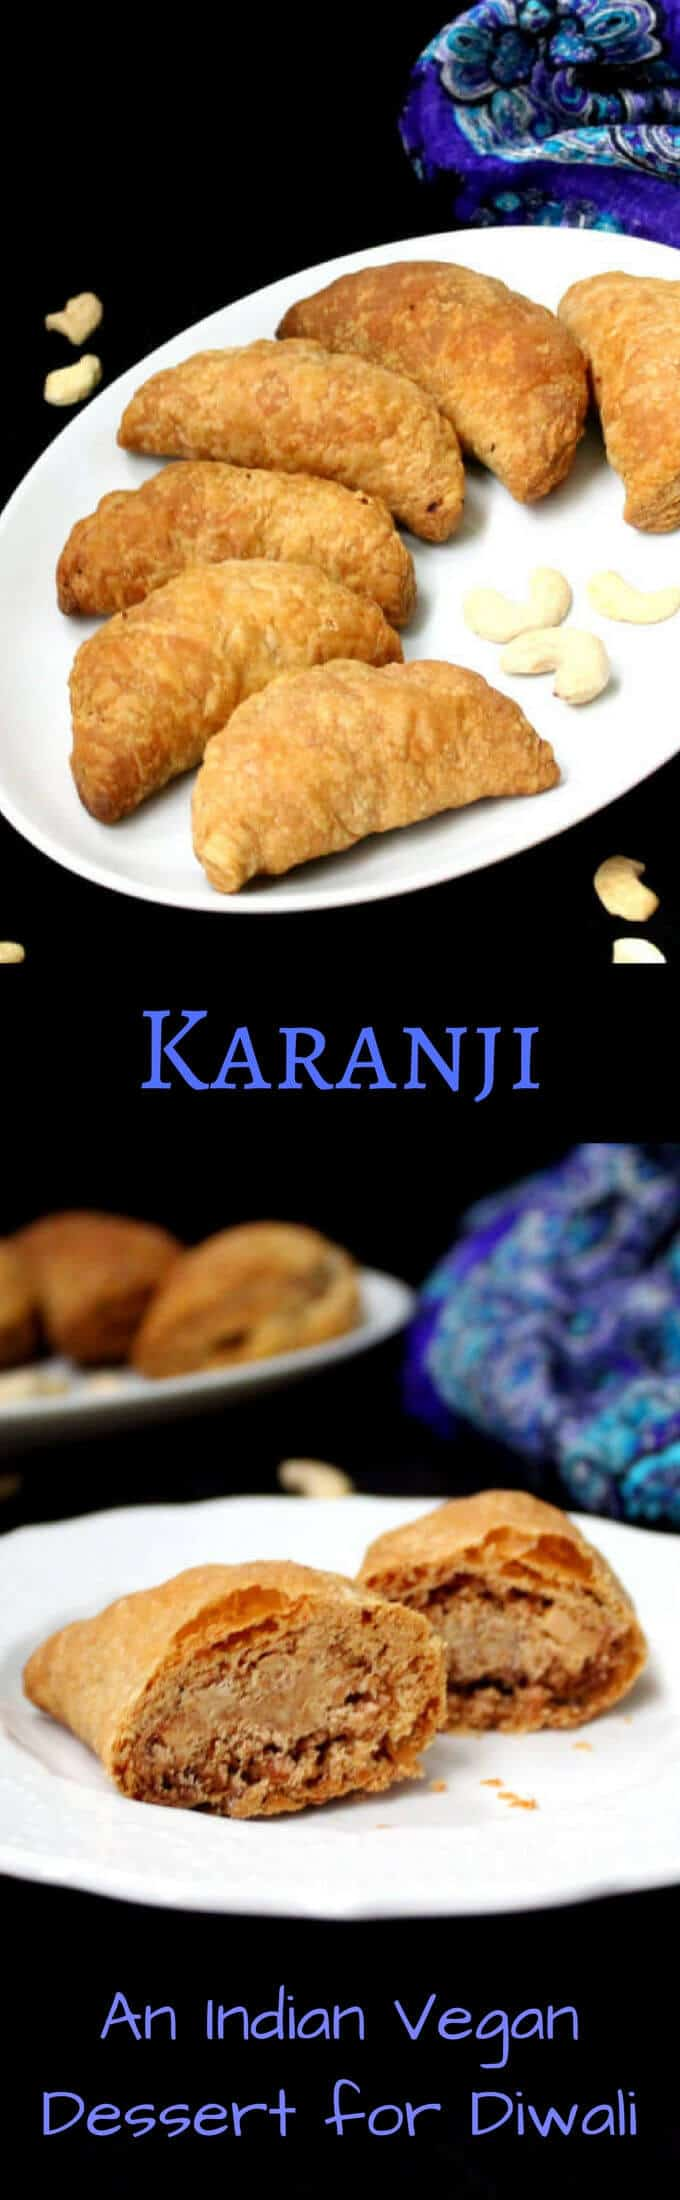 Karanji, an Indian vegan sweet for Diwali - HolyCowVegan.net